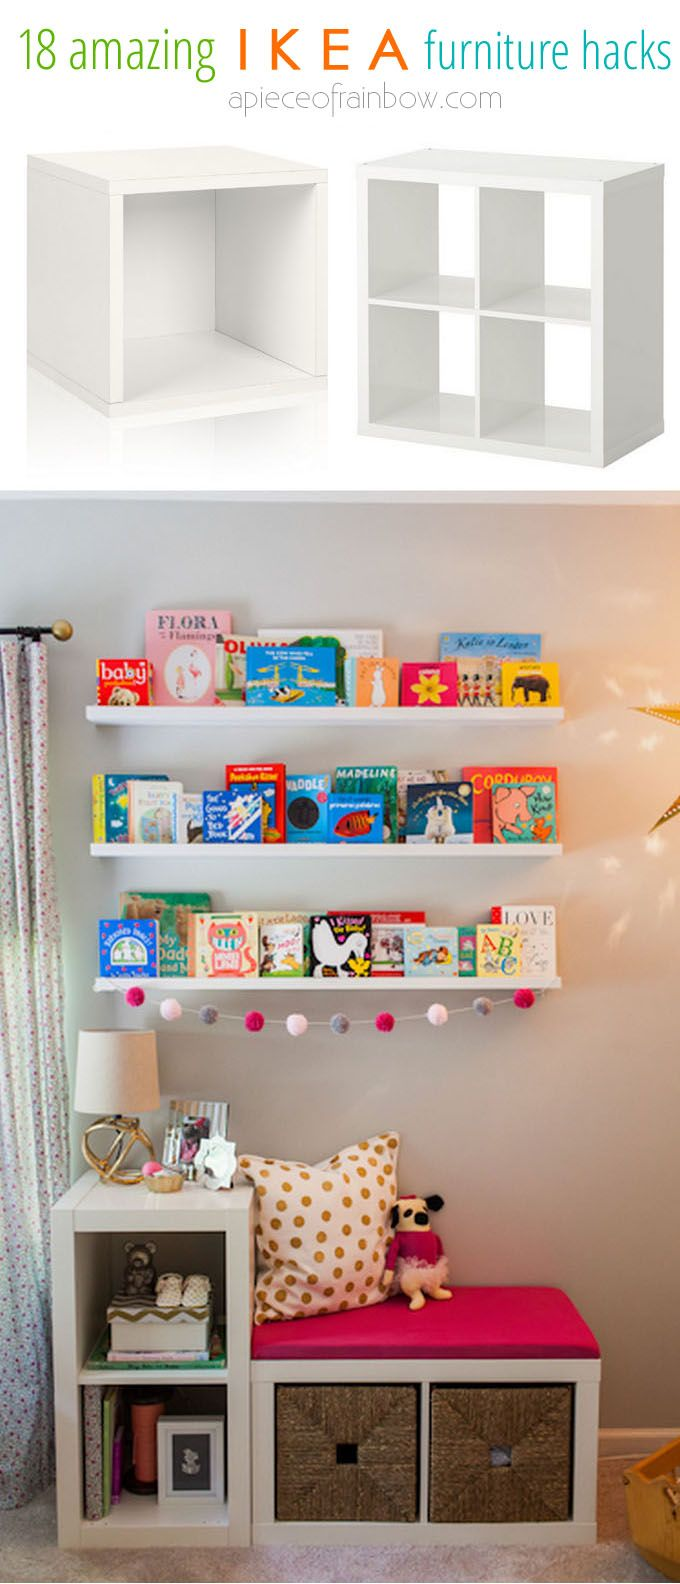 Ikea Playroom Furniture. Easy Custom Furniture With 18 Amazing Ikea Hacks    Page 3 Of